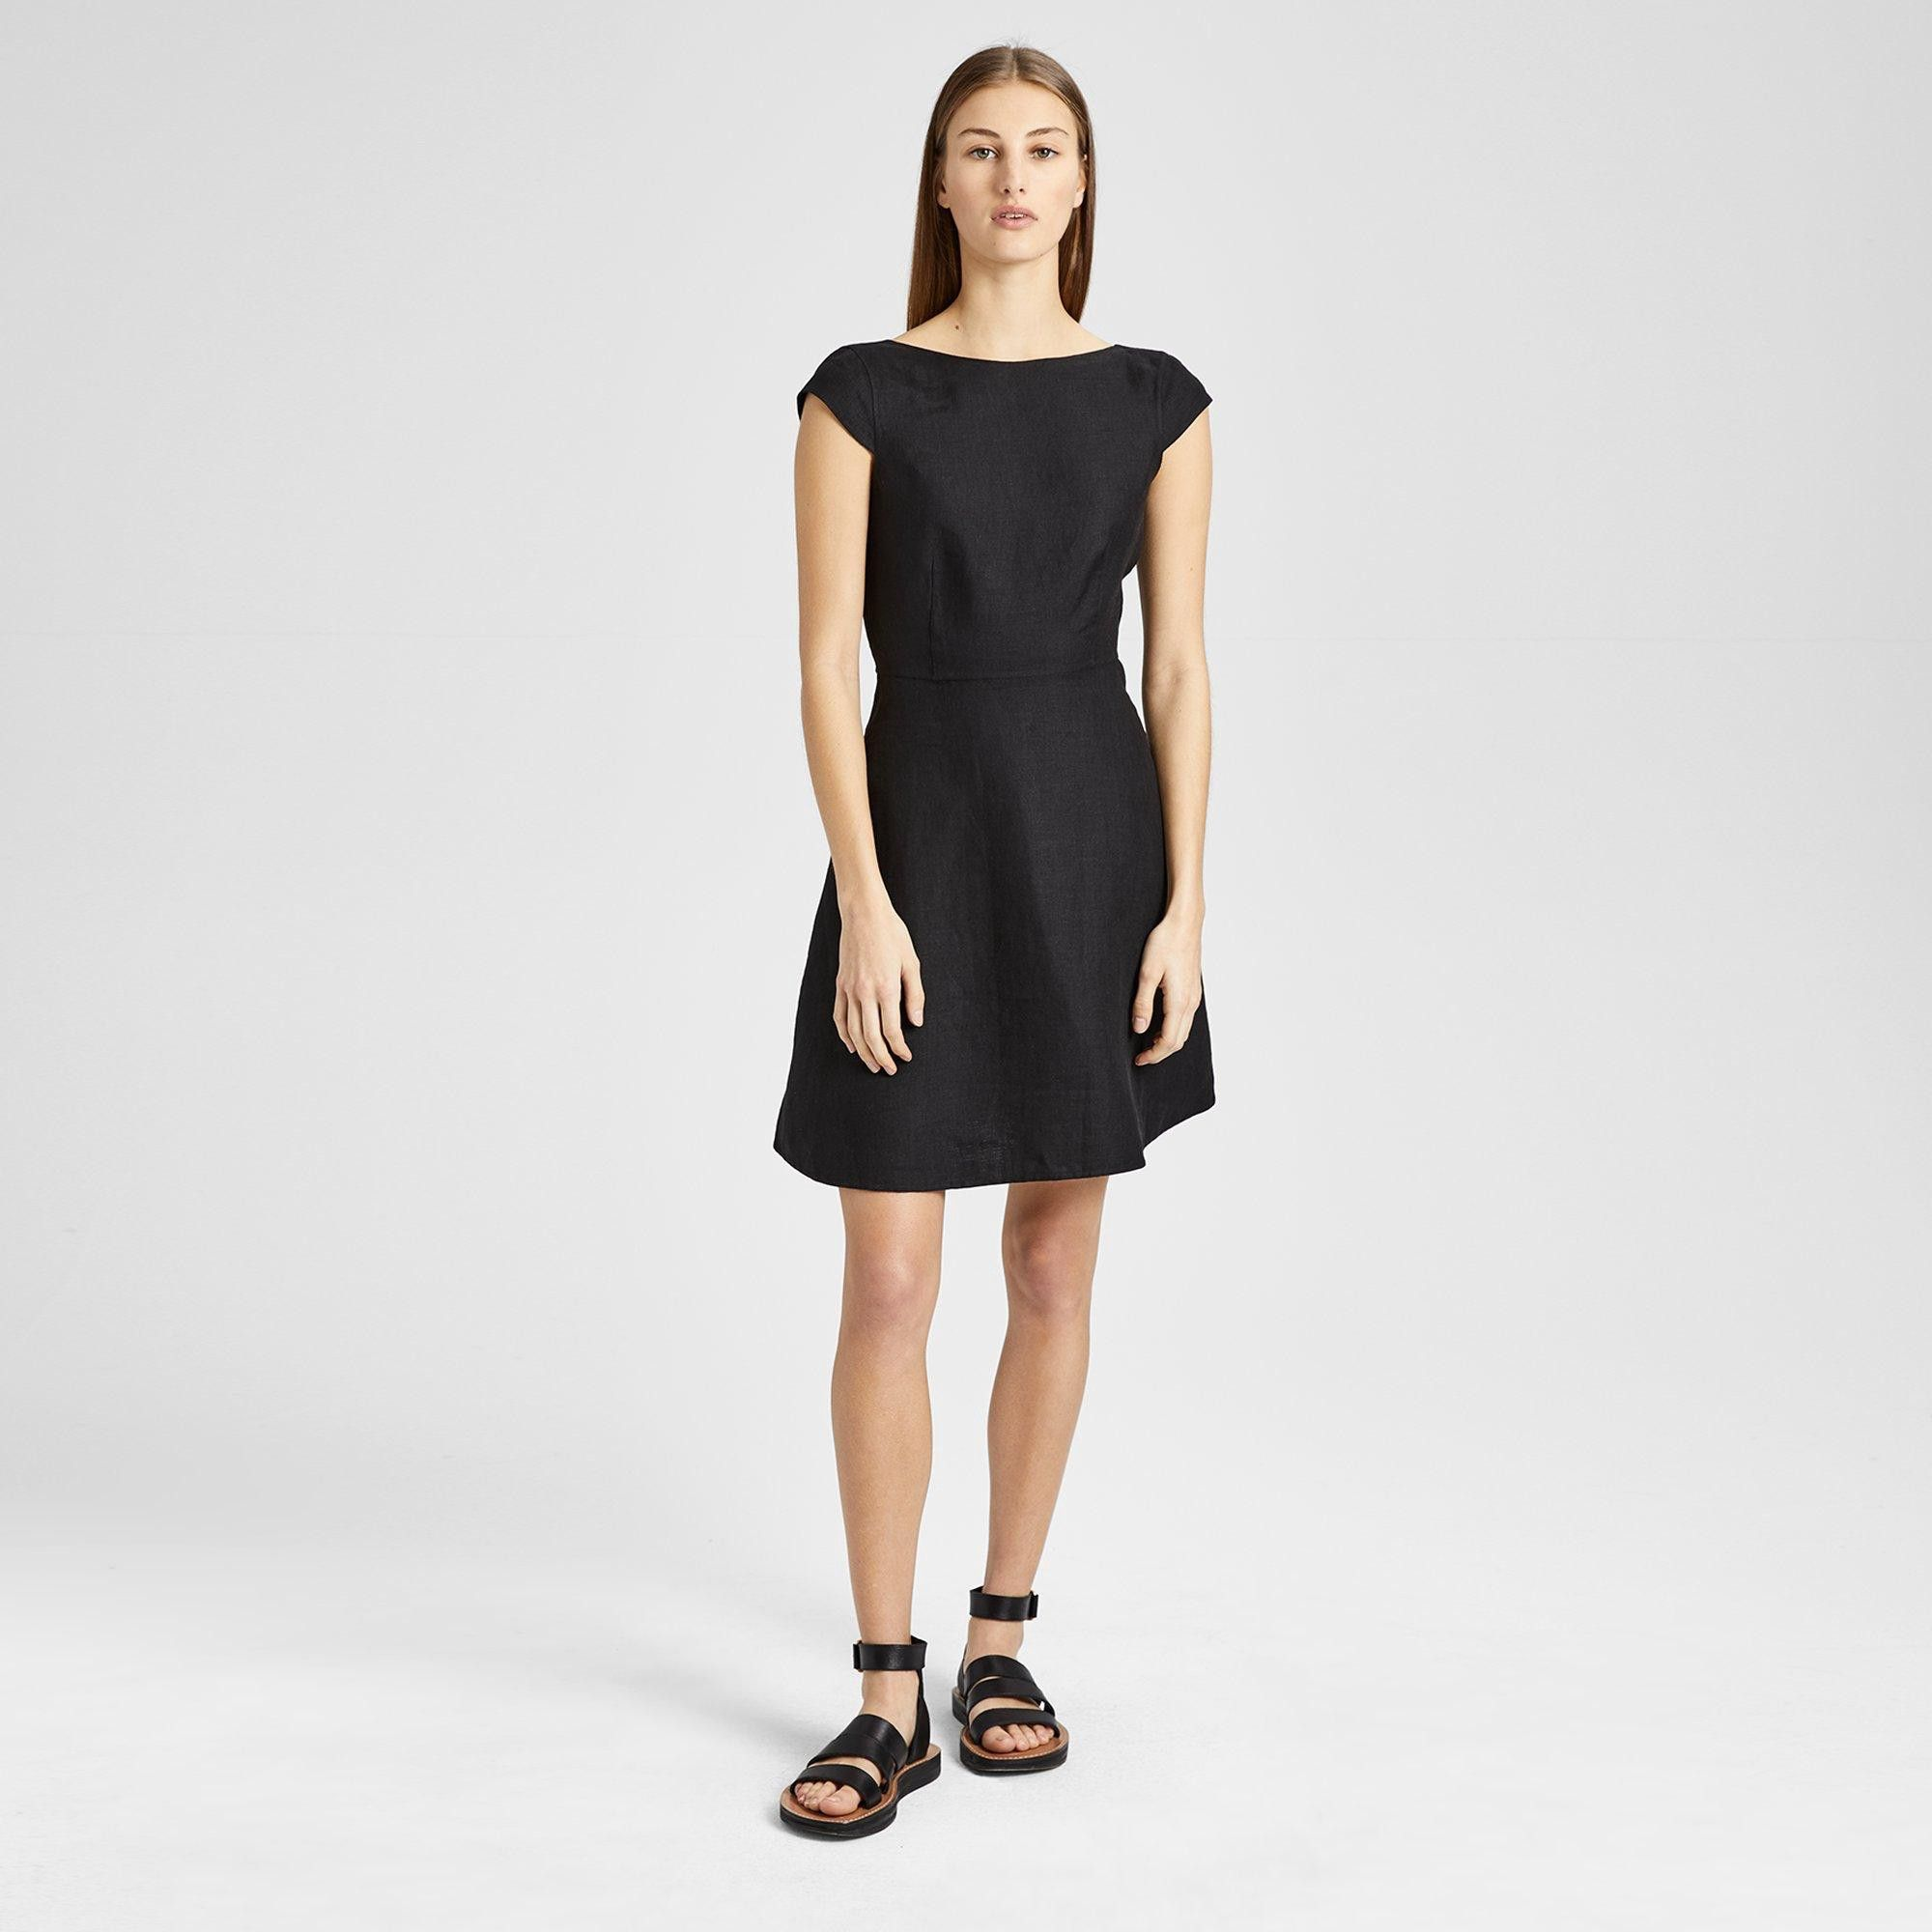 8153aef9 Theory Double-Faced Linen Cap-Sleeve Shift Dress - White Black 10 ...